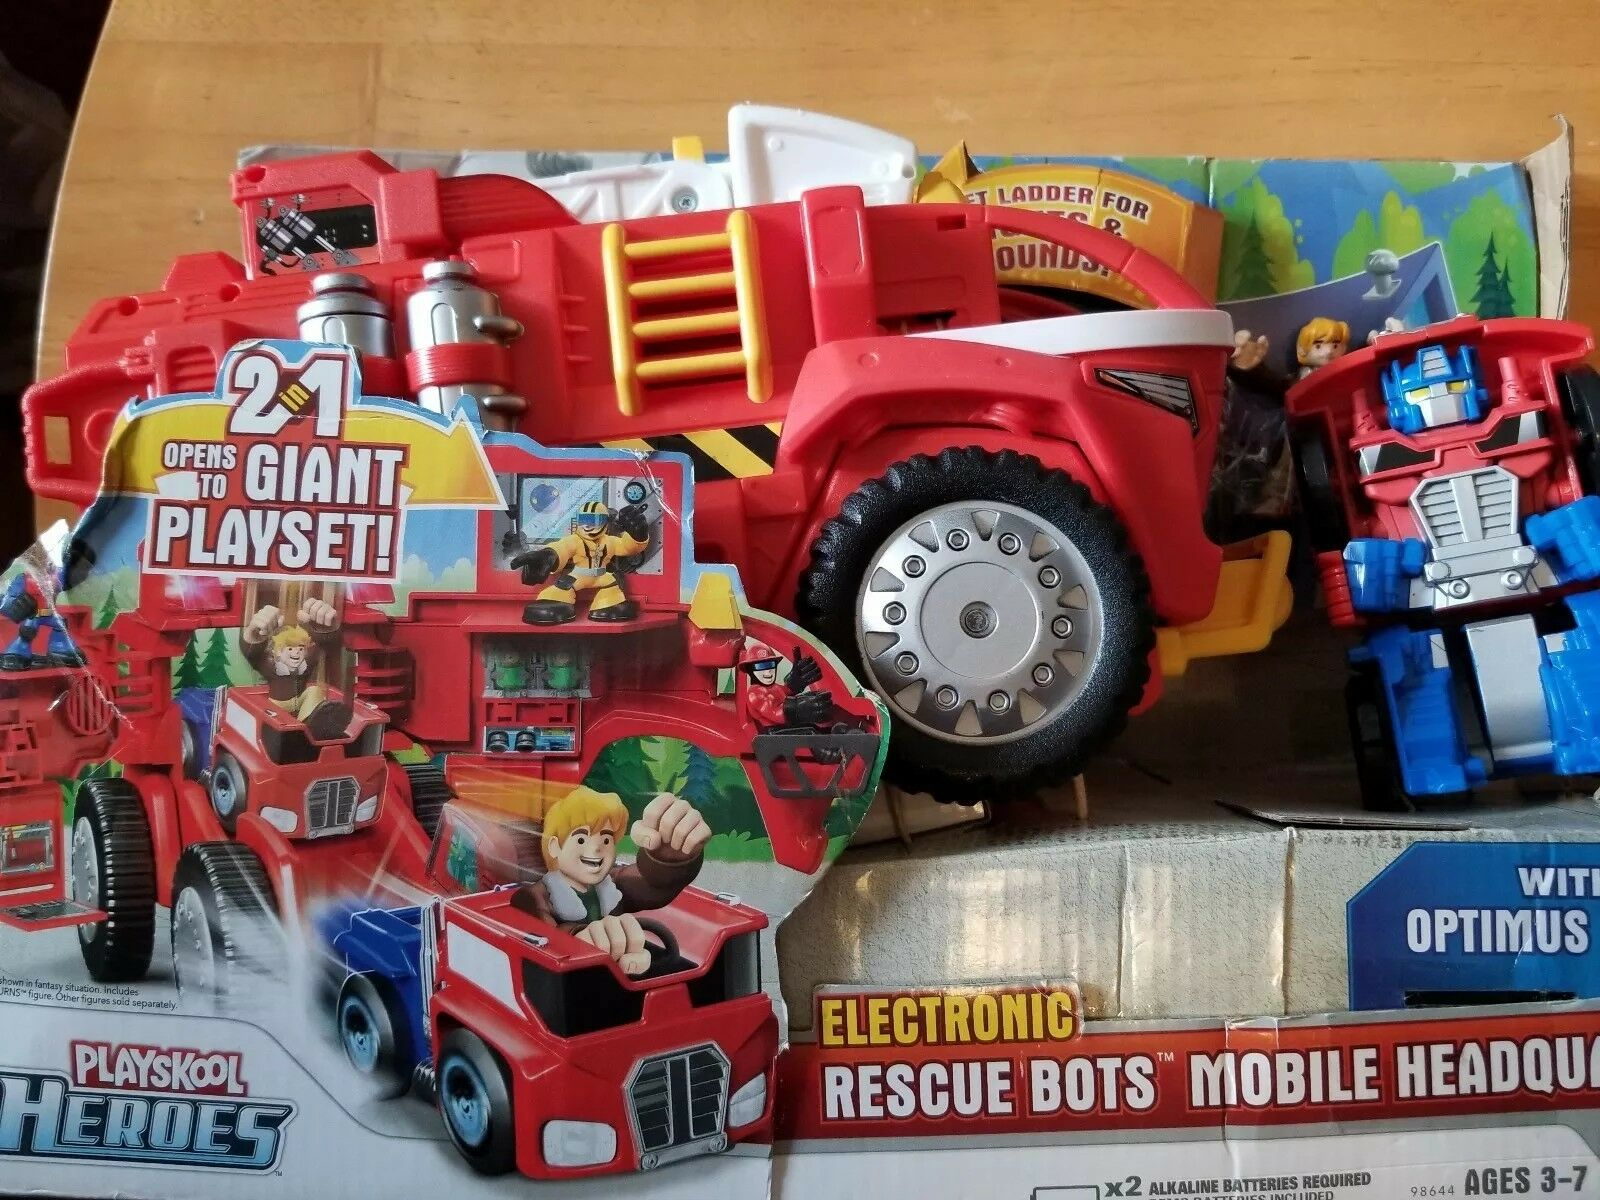 Playskool Transformers Rescue Bots Heroes Electronic Rescue Bots Mobile Headquar